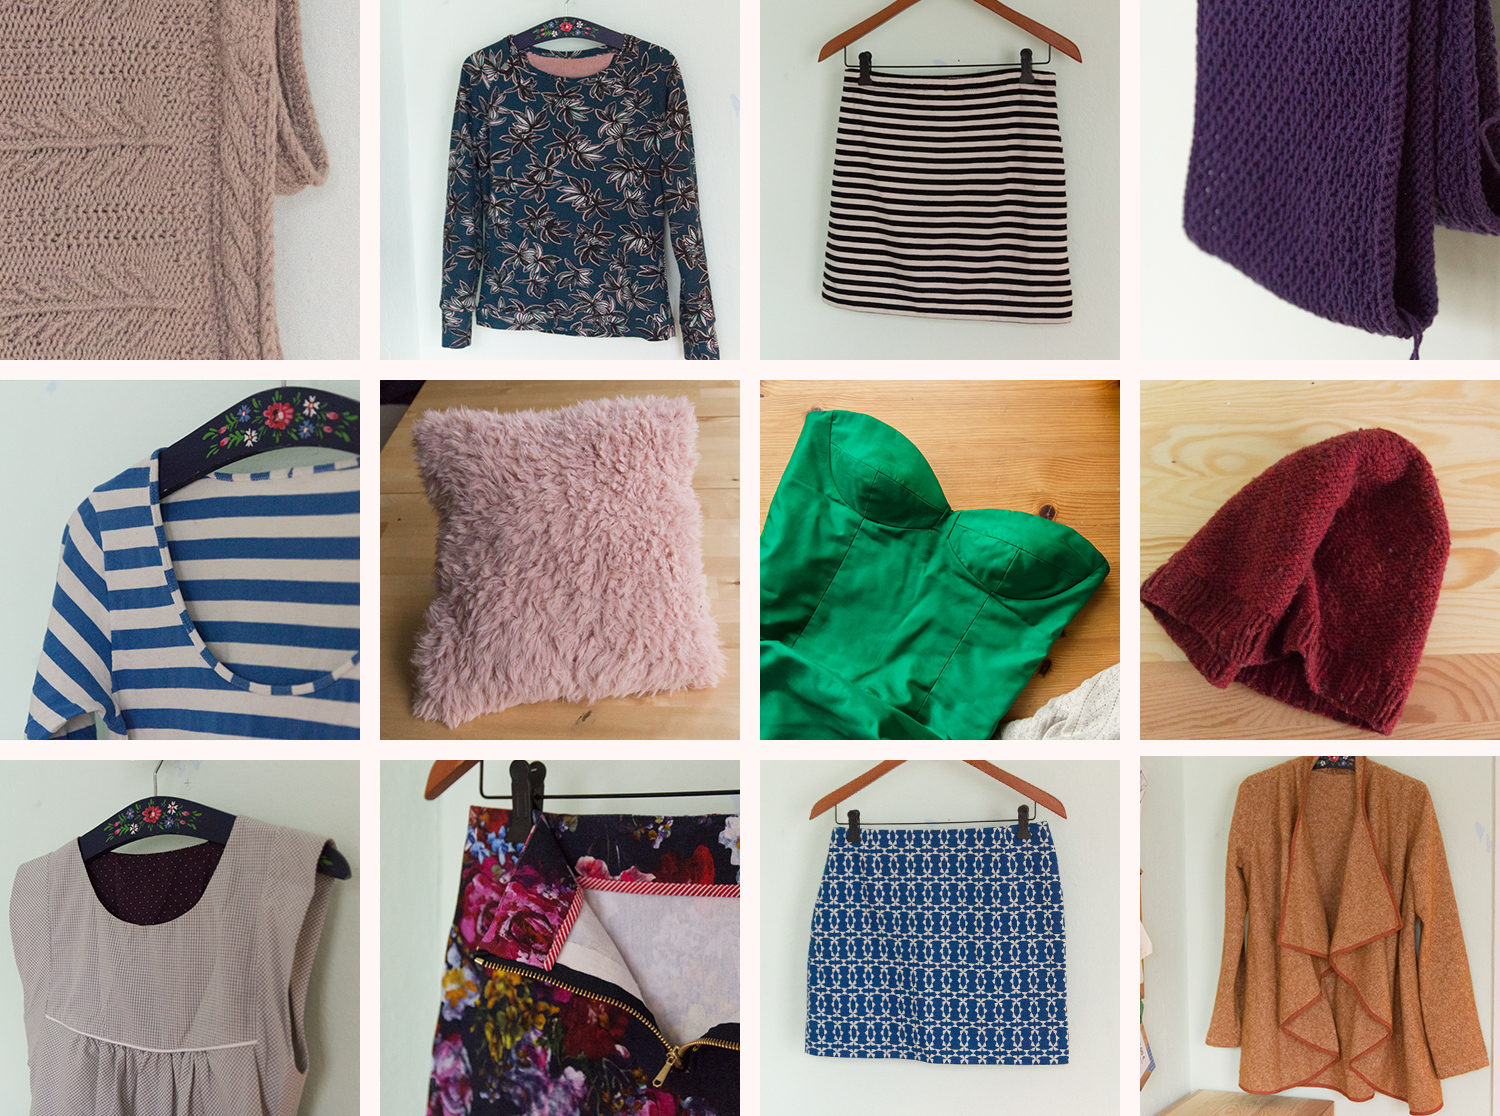 All my sewing and knitting projects of 2016